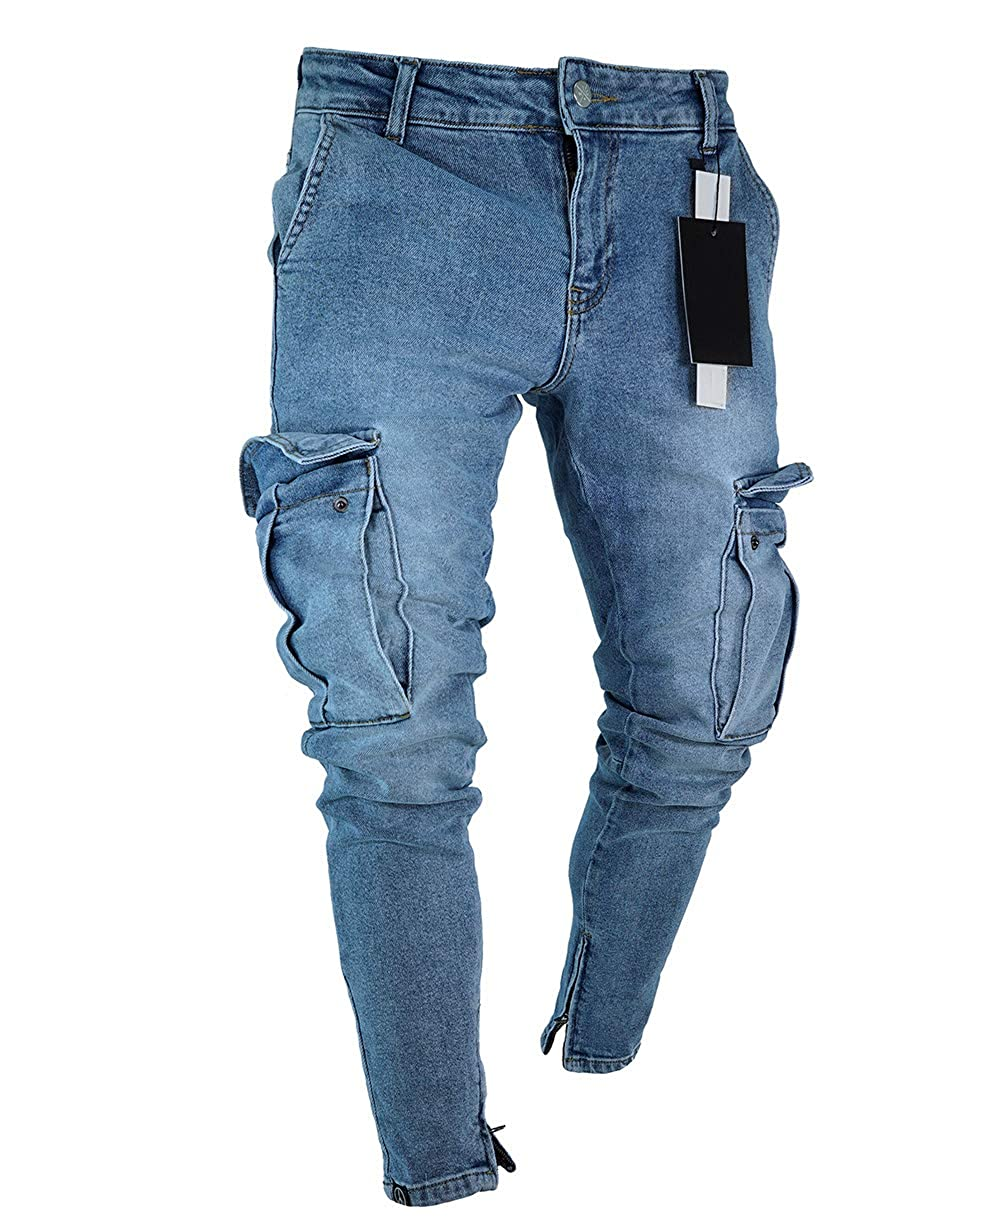 Nansiche Mens Stretchy Ripped Jeans Trousers Skinny Biker Jeans Destroyed Taped Slim Denim Pant